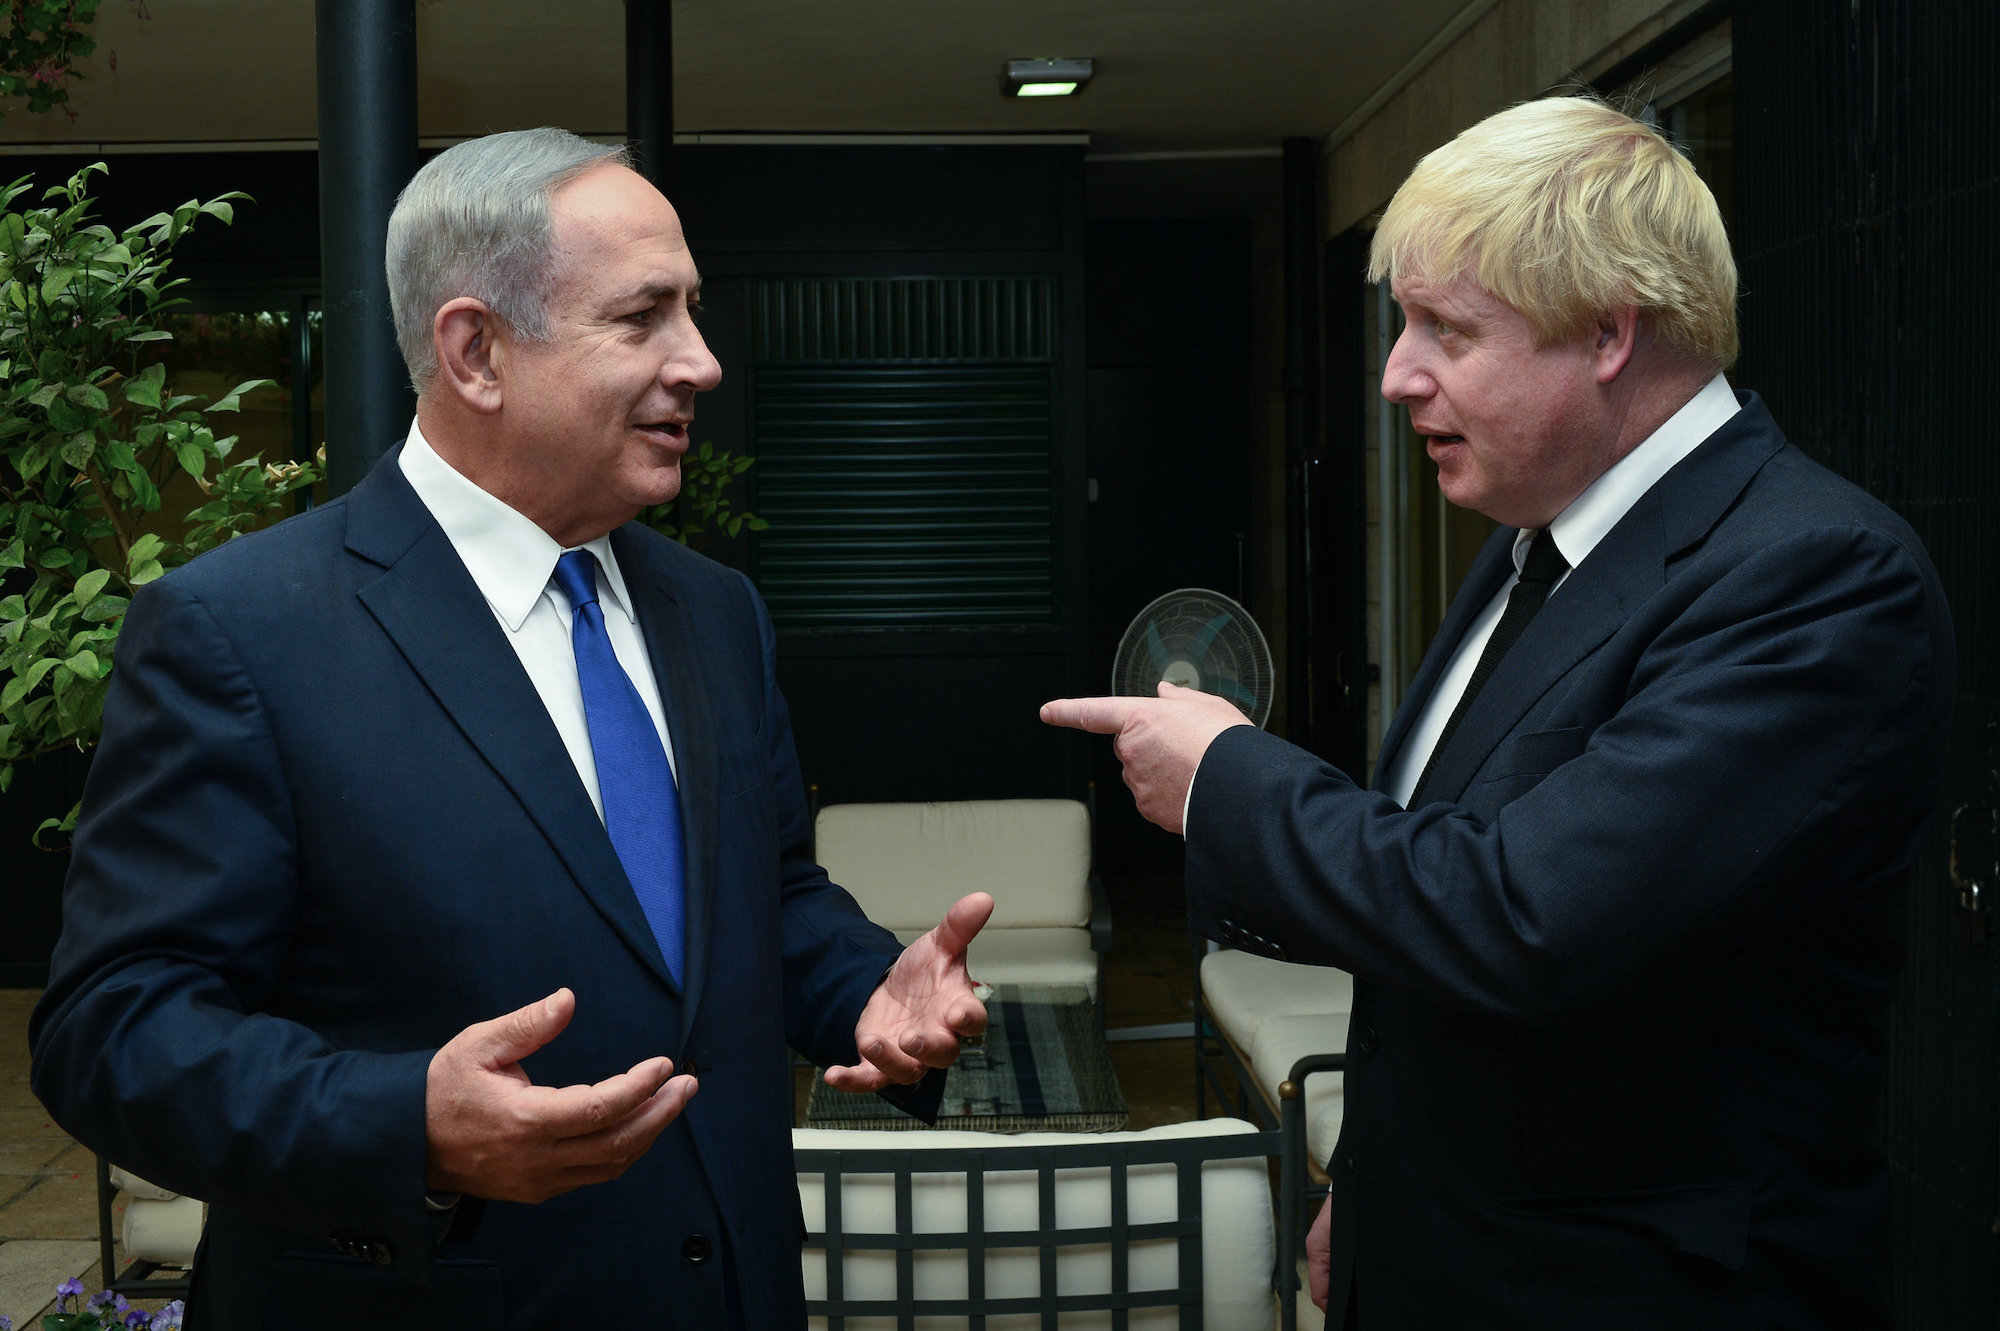 Prime Minister Benjamin Netanyahu meets with British Foreign Minister Boris Johnson at the Prime Minister's House in Jerusalem on September 30, 2016. (Kobi Gideon / GPO)